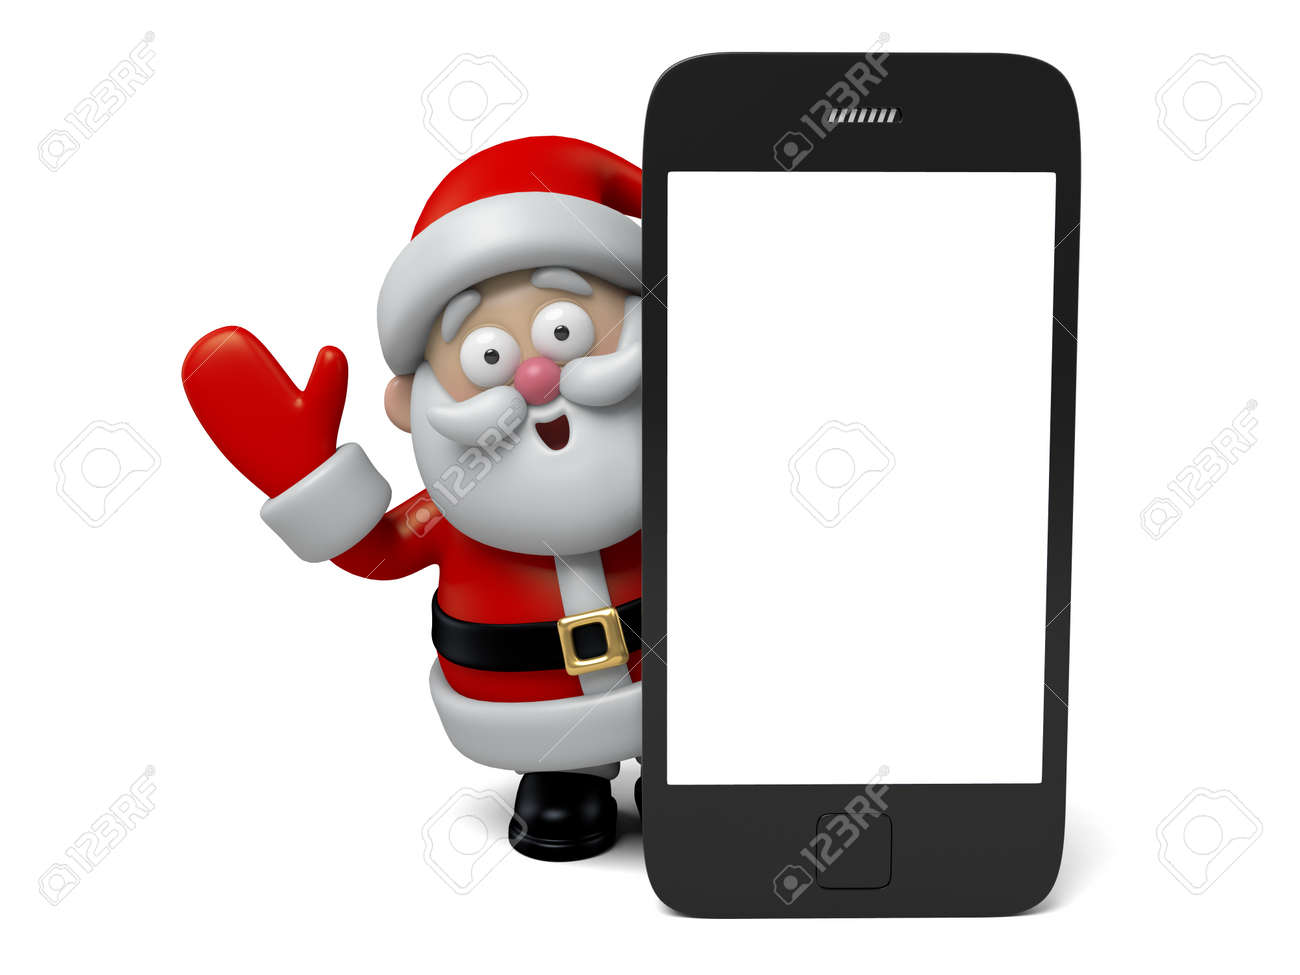 The Santa Claus and a cellphone - 47554634